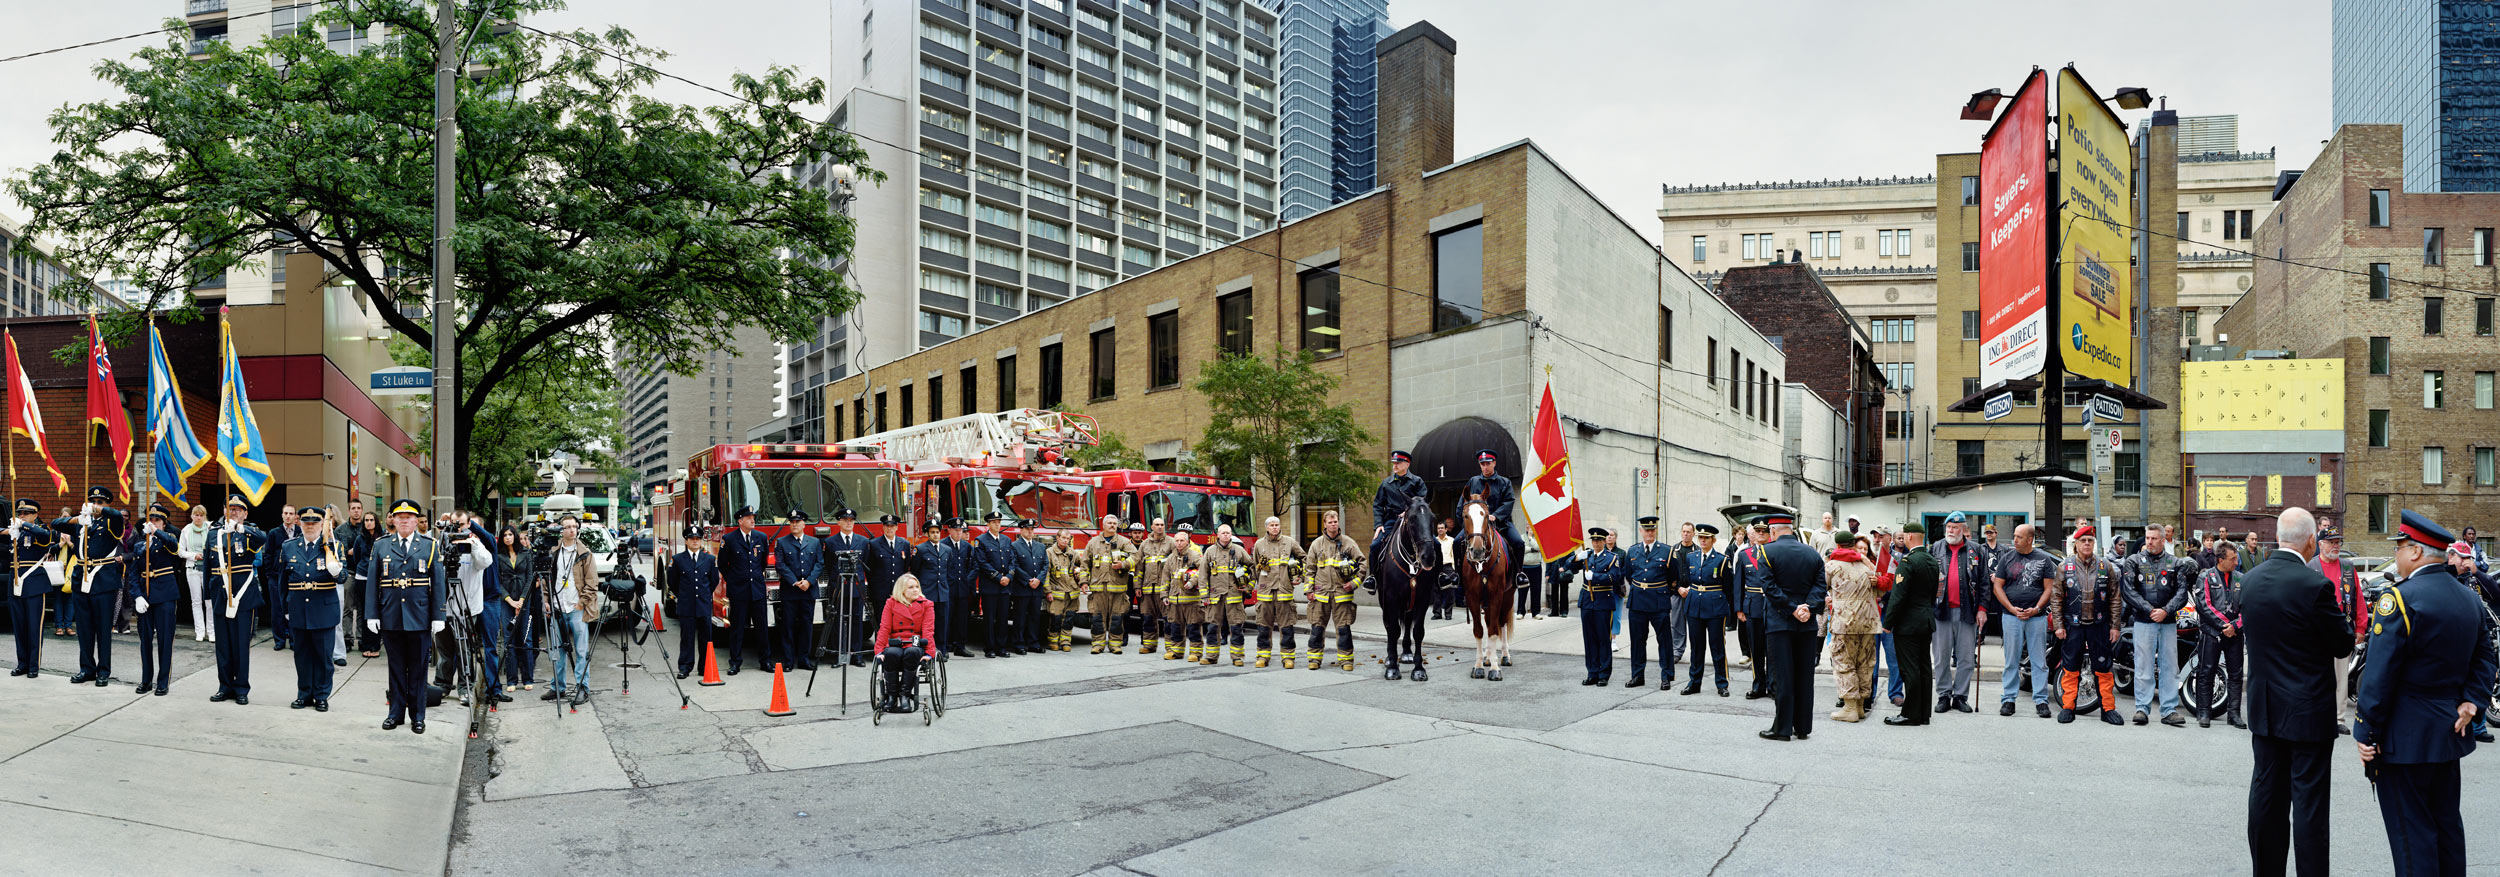 Corner of the Courageous, Repatriation Ceremony for Sergeant Martin Goudreault, Grenville St., Toronto, Ontario, June 9th, 2010